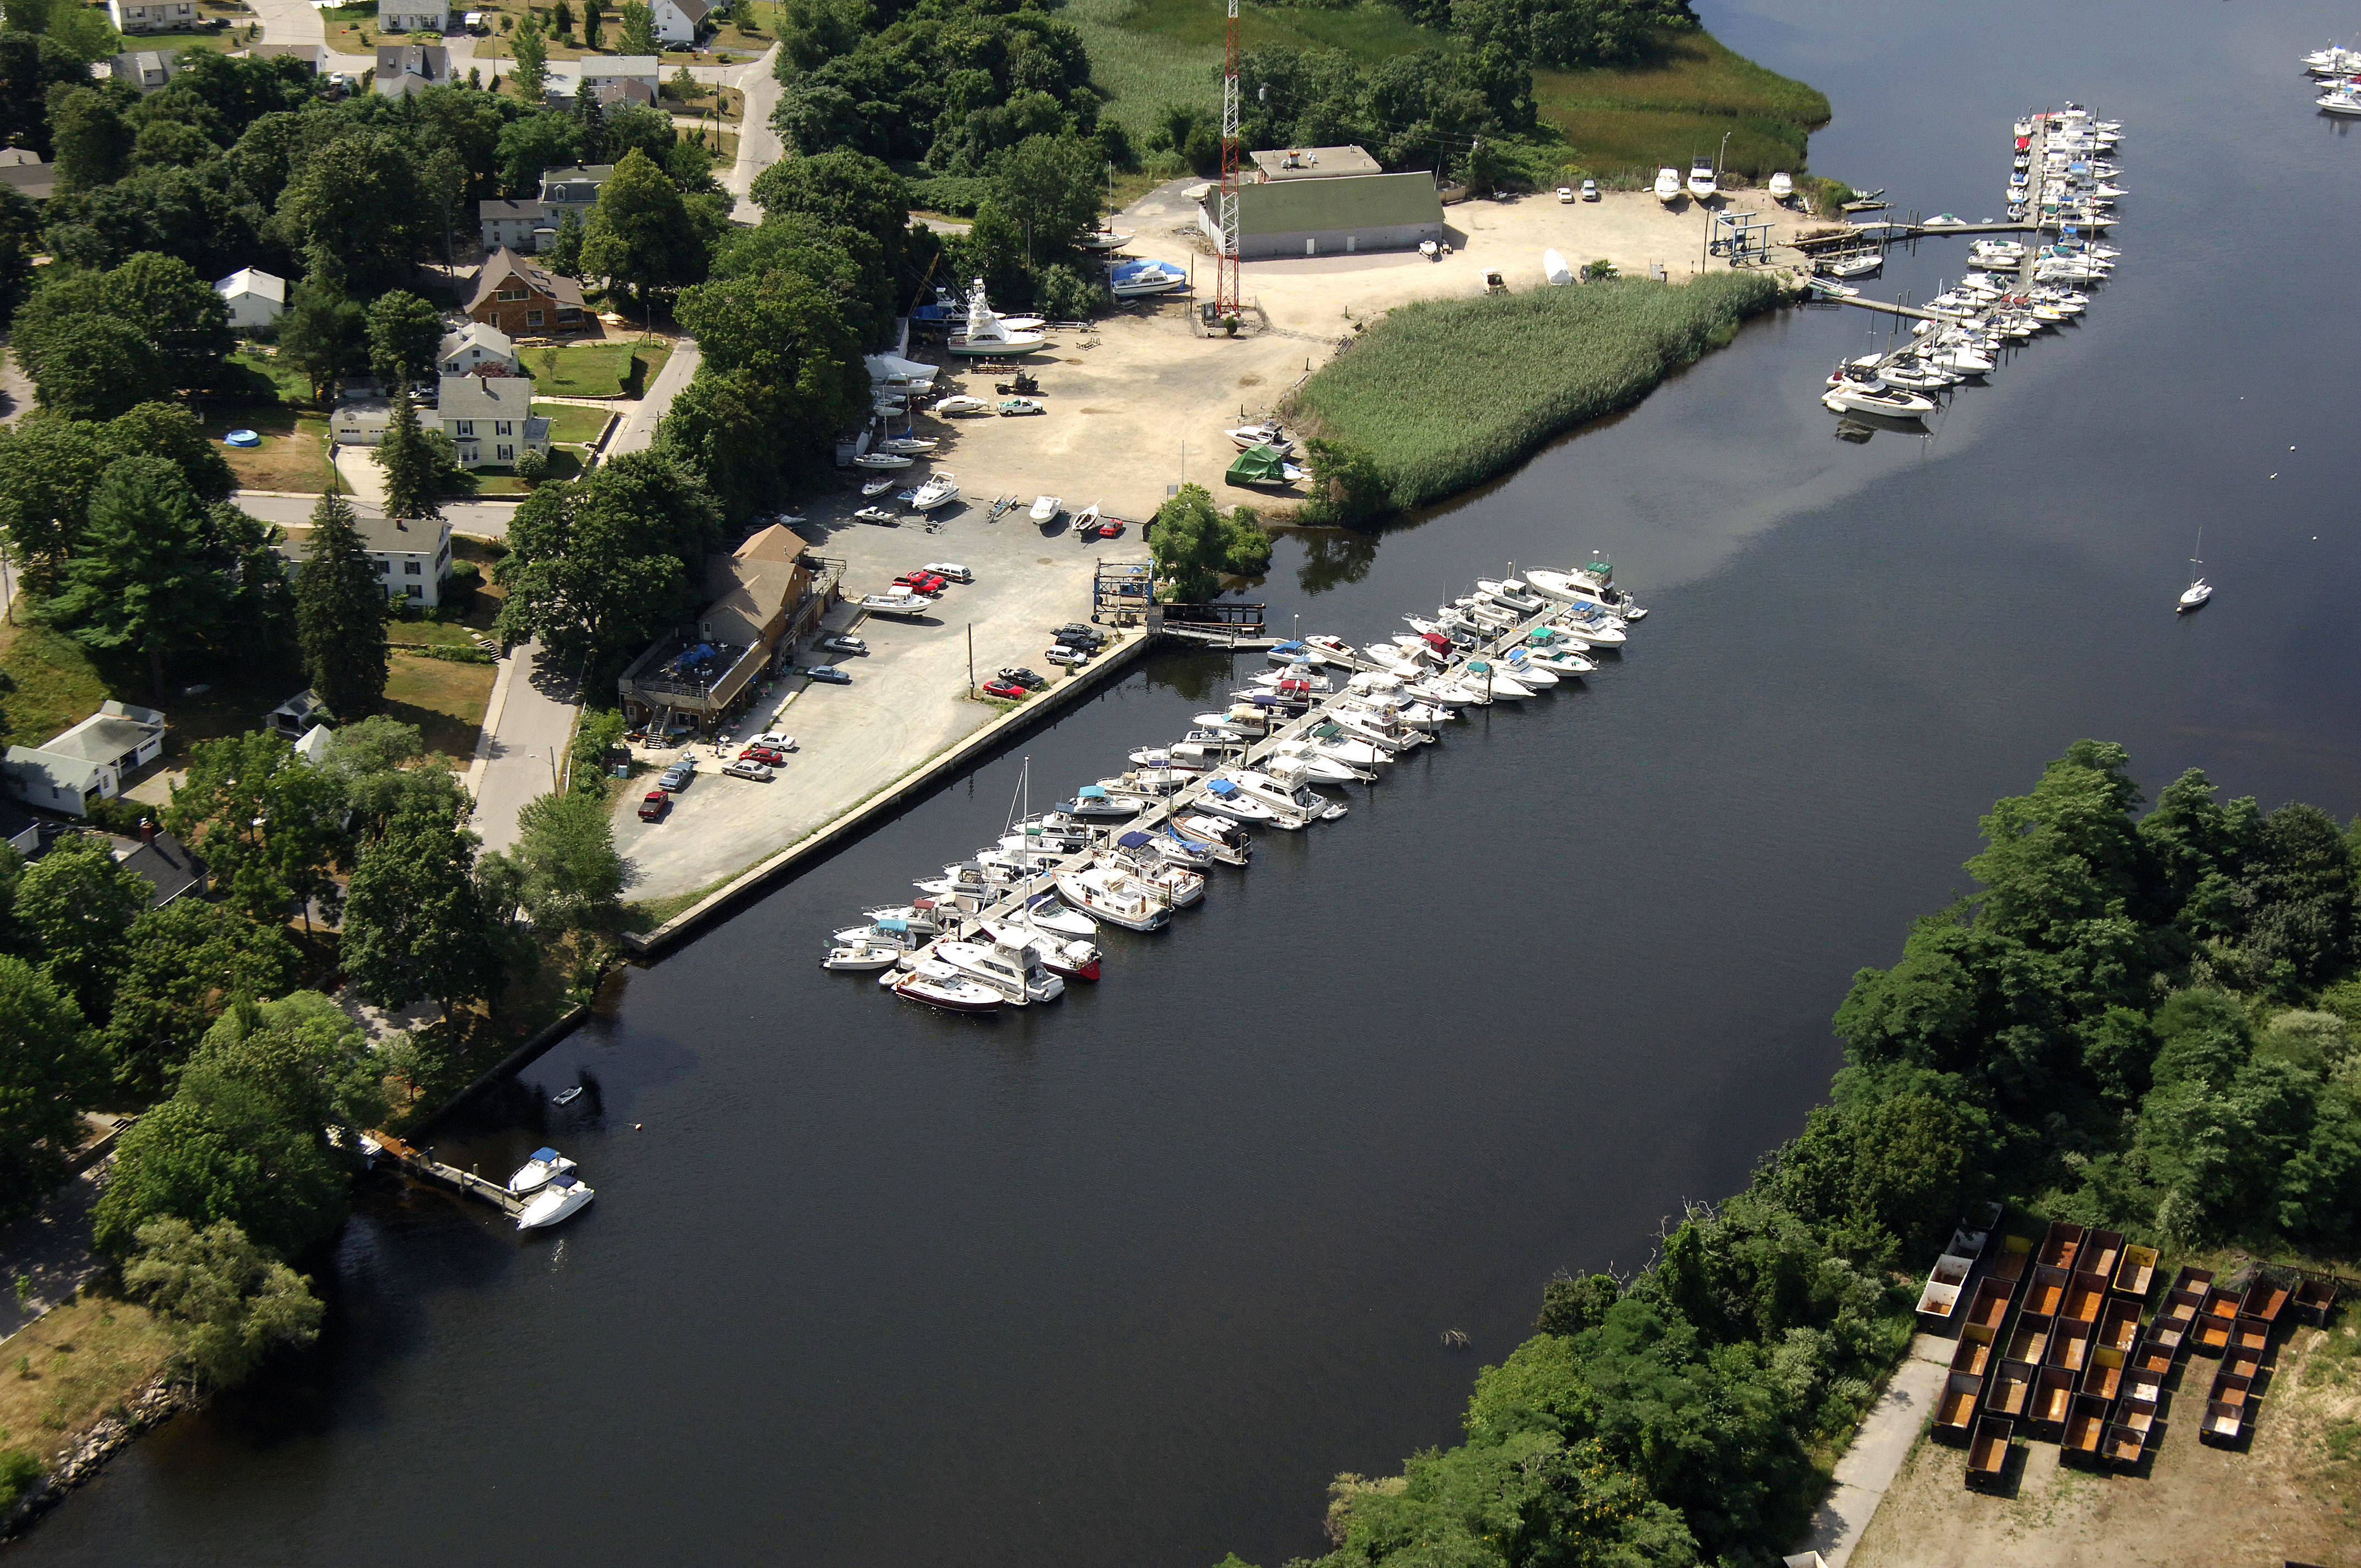 Viking marina in westerly ri united states marina reviews viking marina in westerly ri united states marina reviews phone number marinas nvjuhfo Images